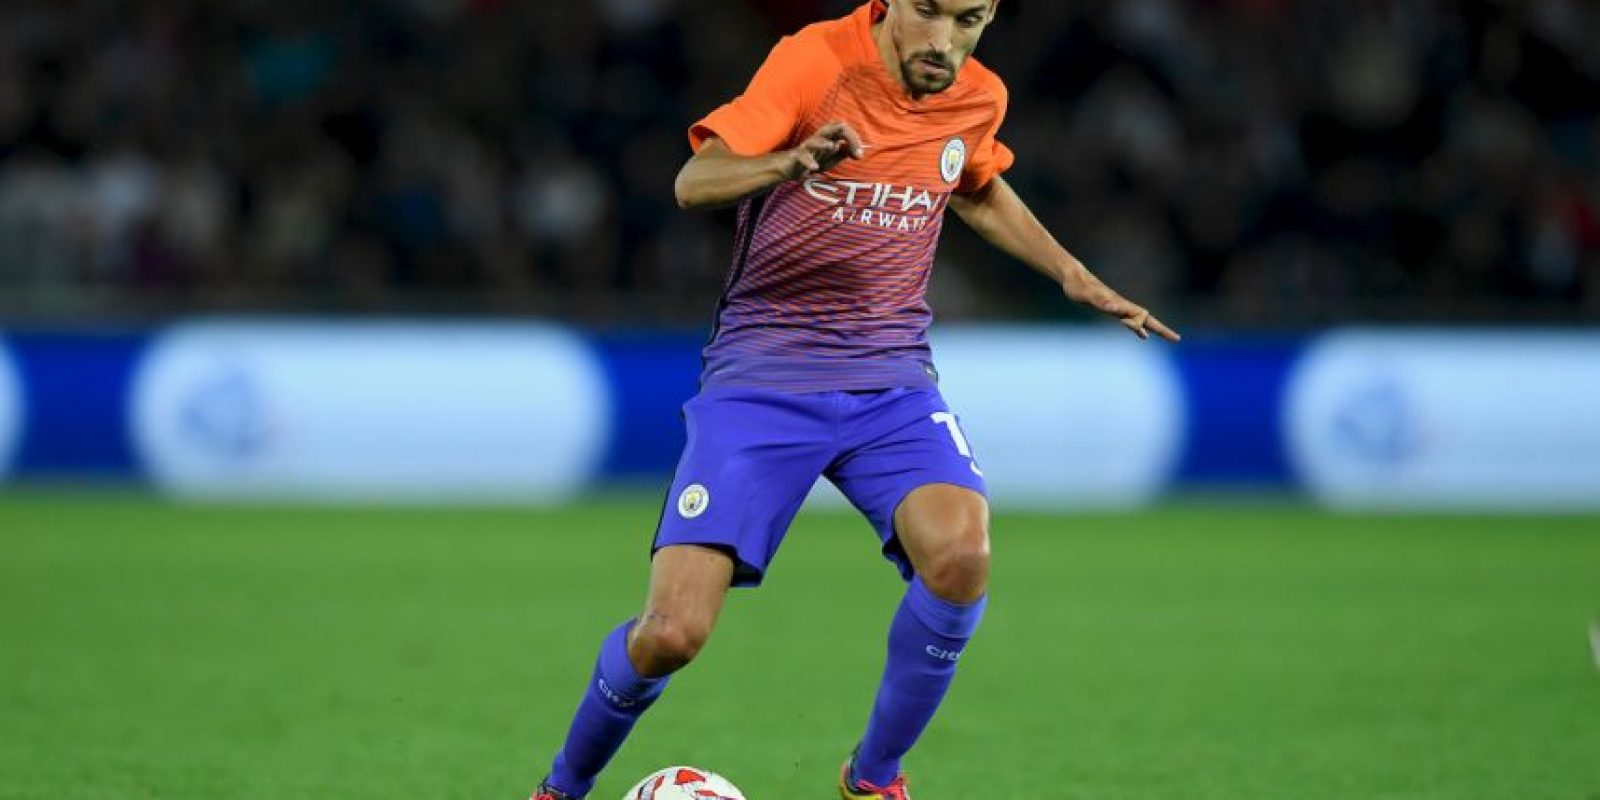 18.Jesus Navas (Manchester City) – 34.65 km/h Foto: Getty images